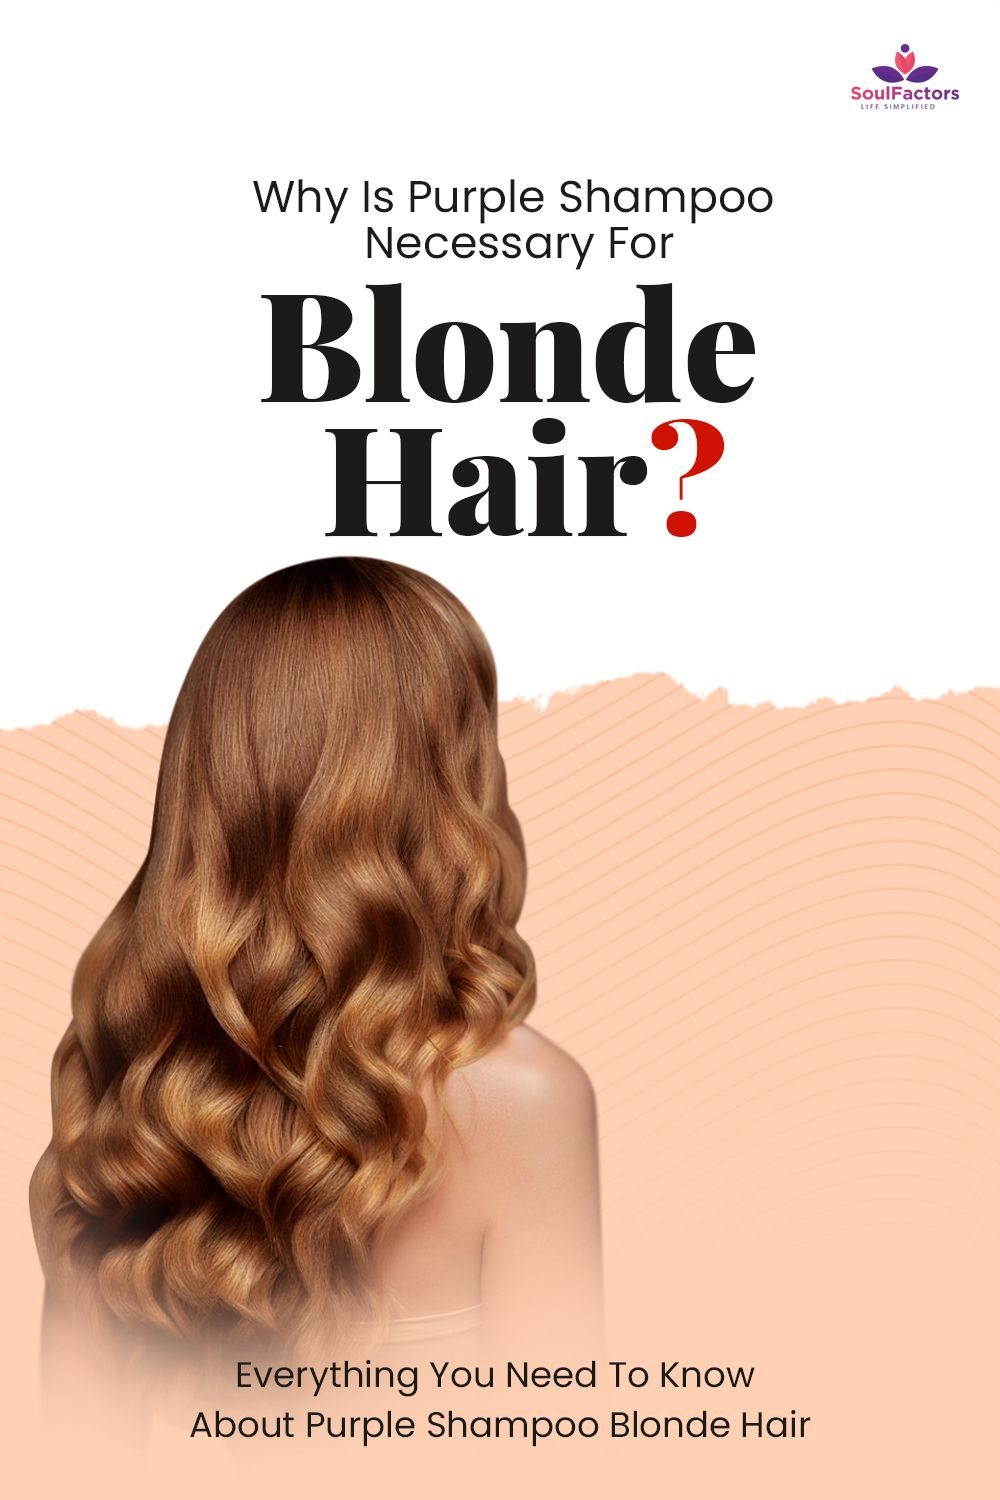 Here's What You Should Do to Flaunt your Perfect Blonde Hair!